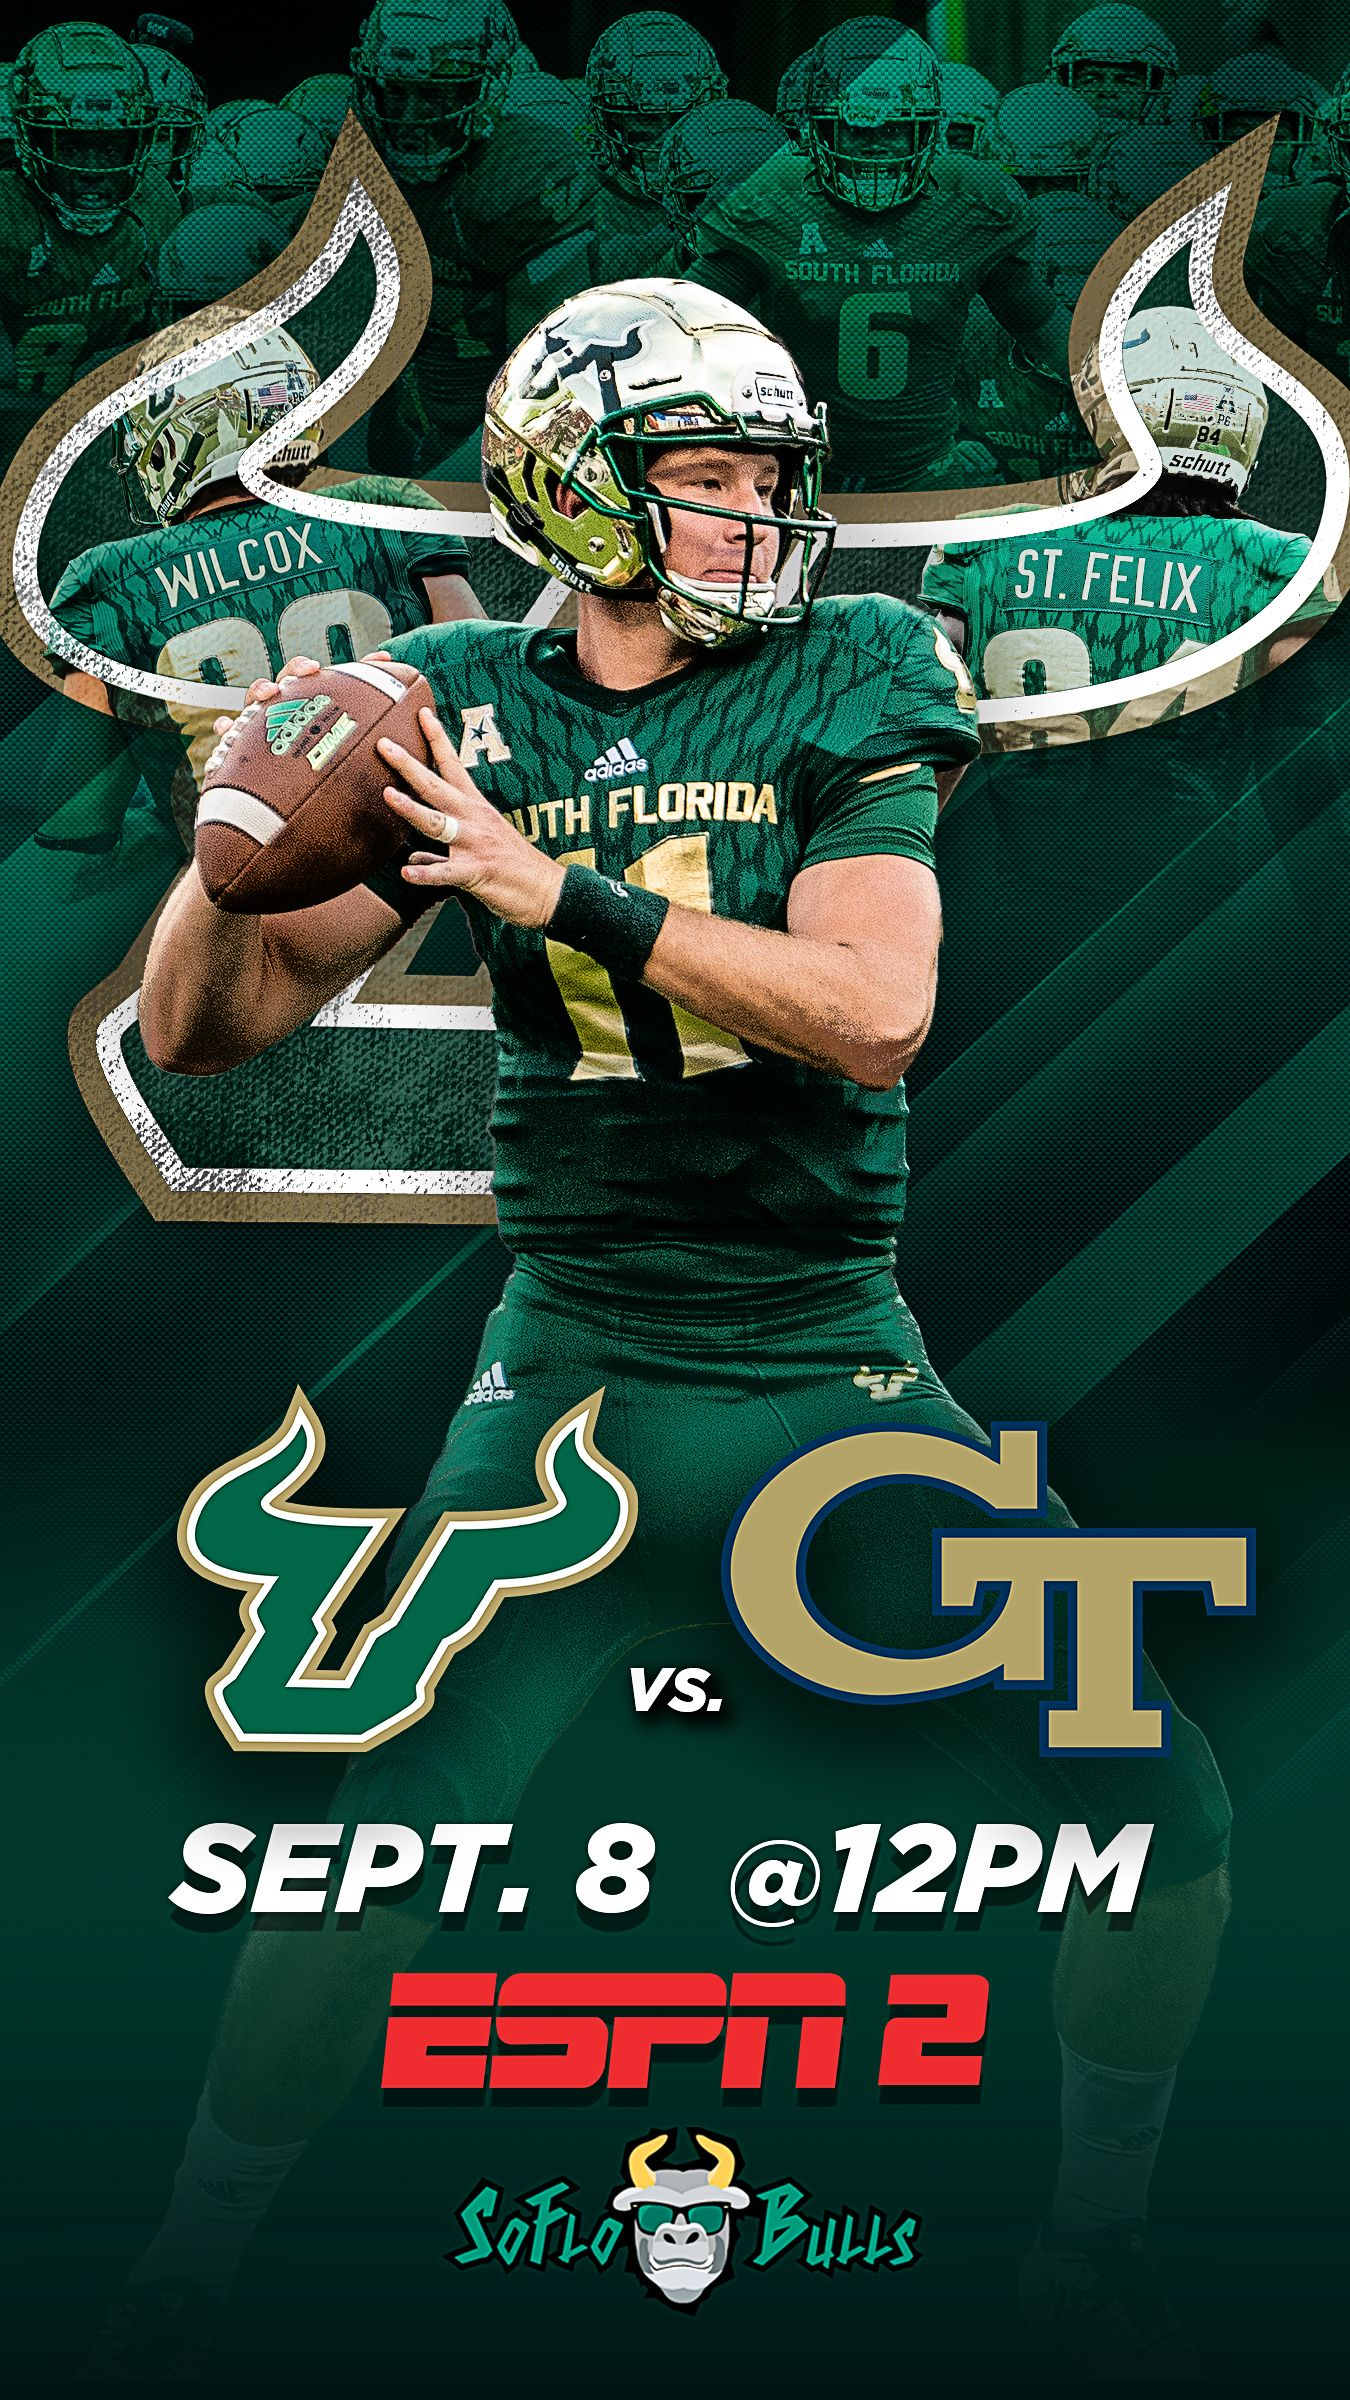 USF Game Day Promo for week 2 vs Tech. The